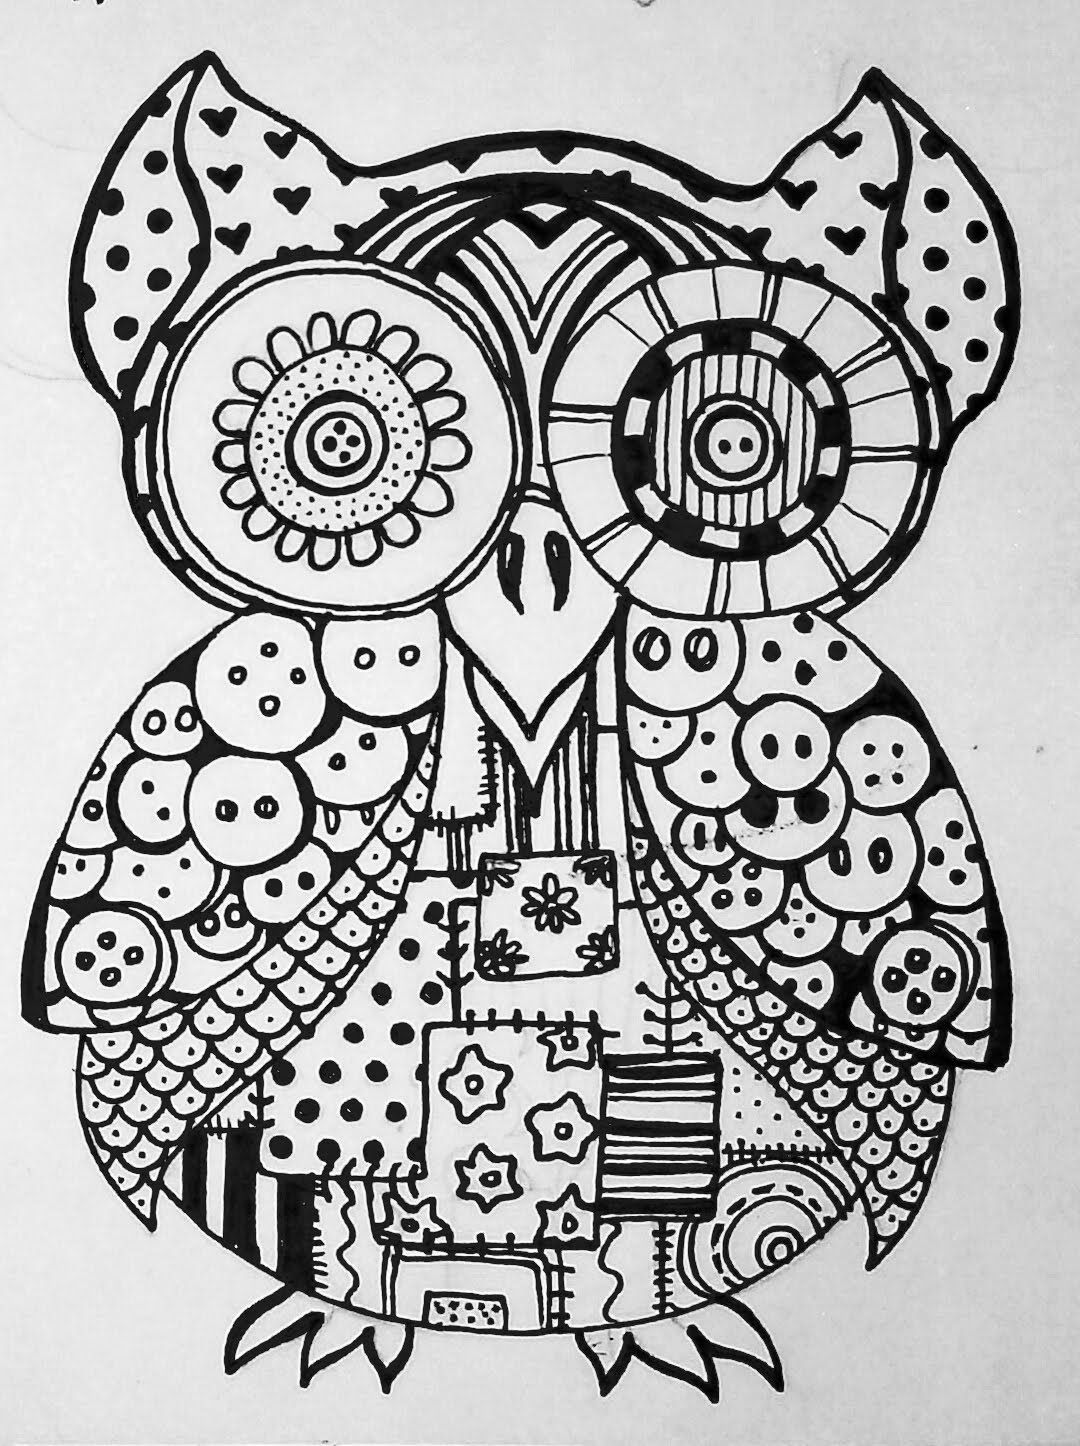 owl5.jpg (1080×1446) | Pyrography | Pinterest | Graffiti murals ... for Geometric Owl Coloring Pages  585eri